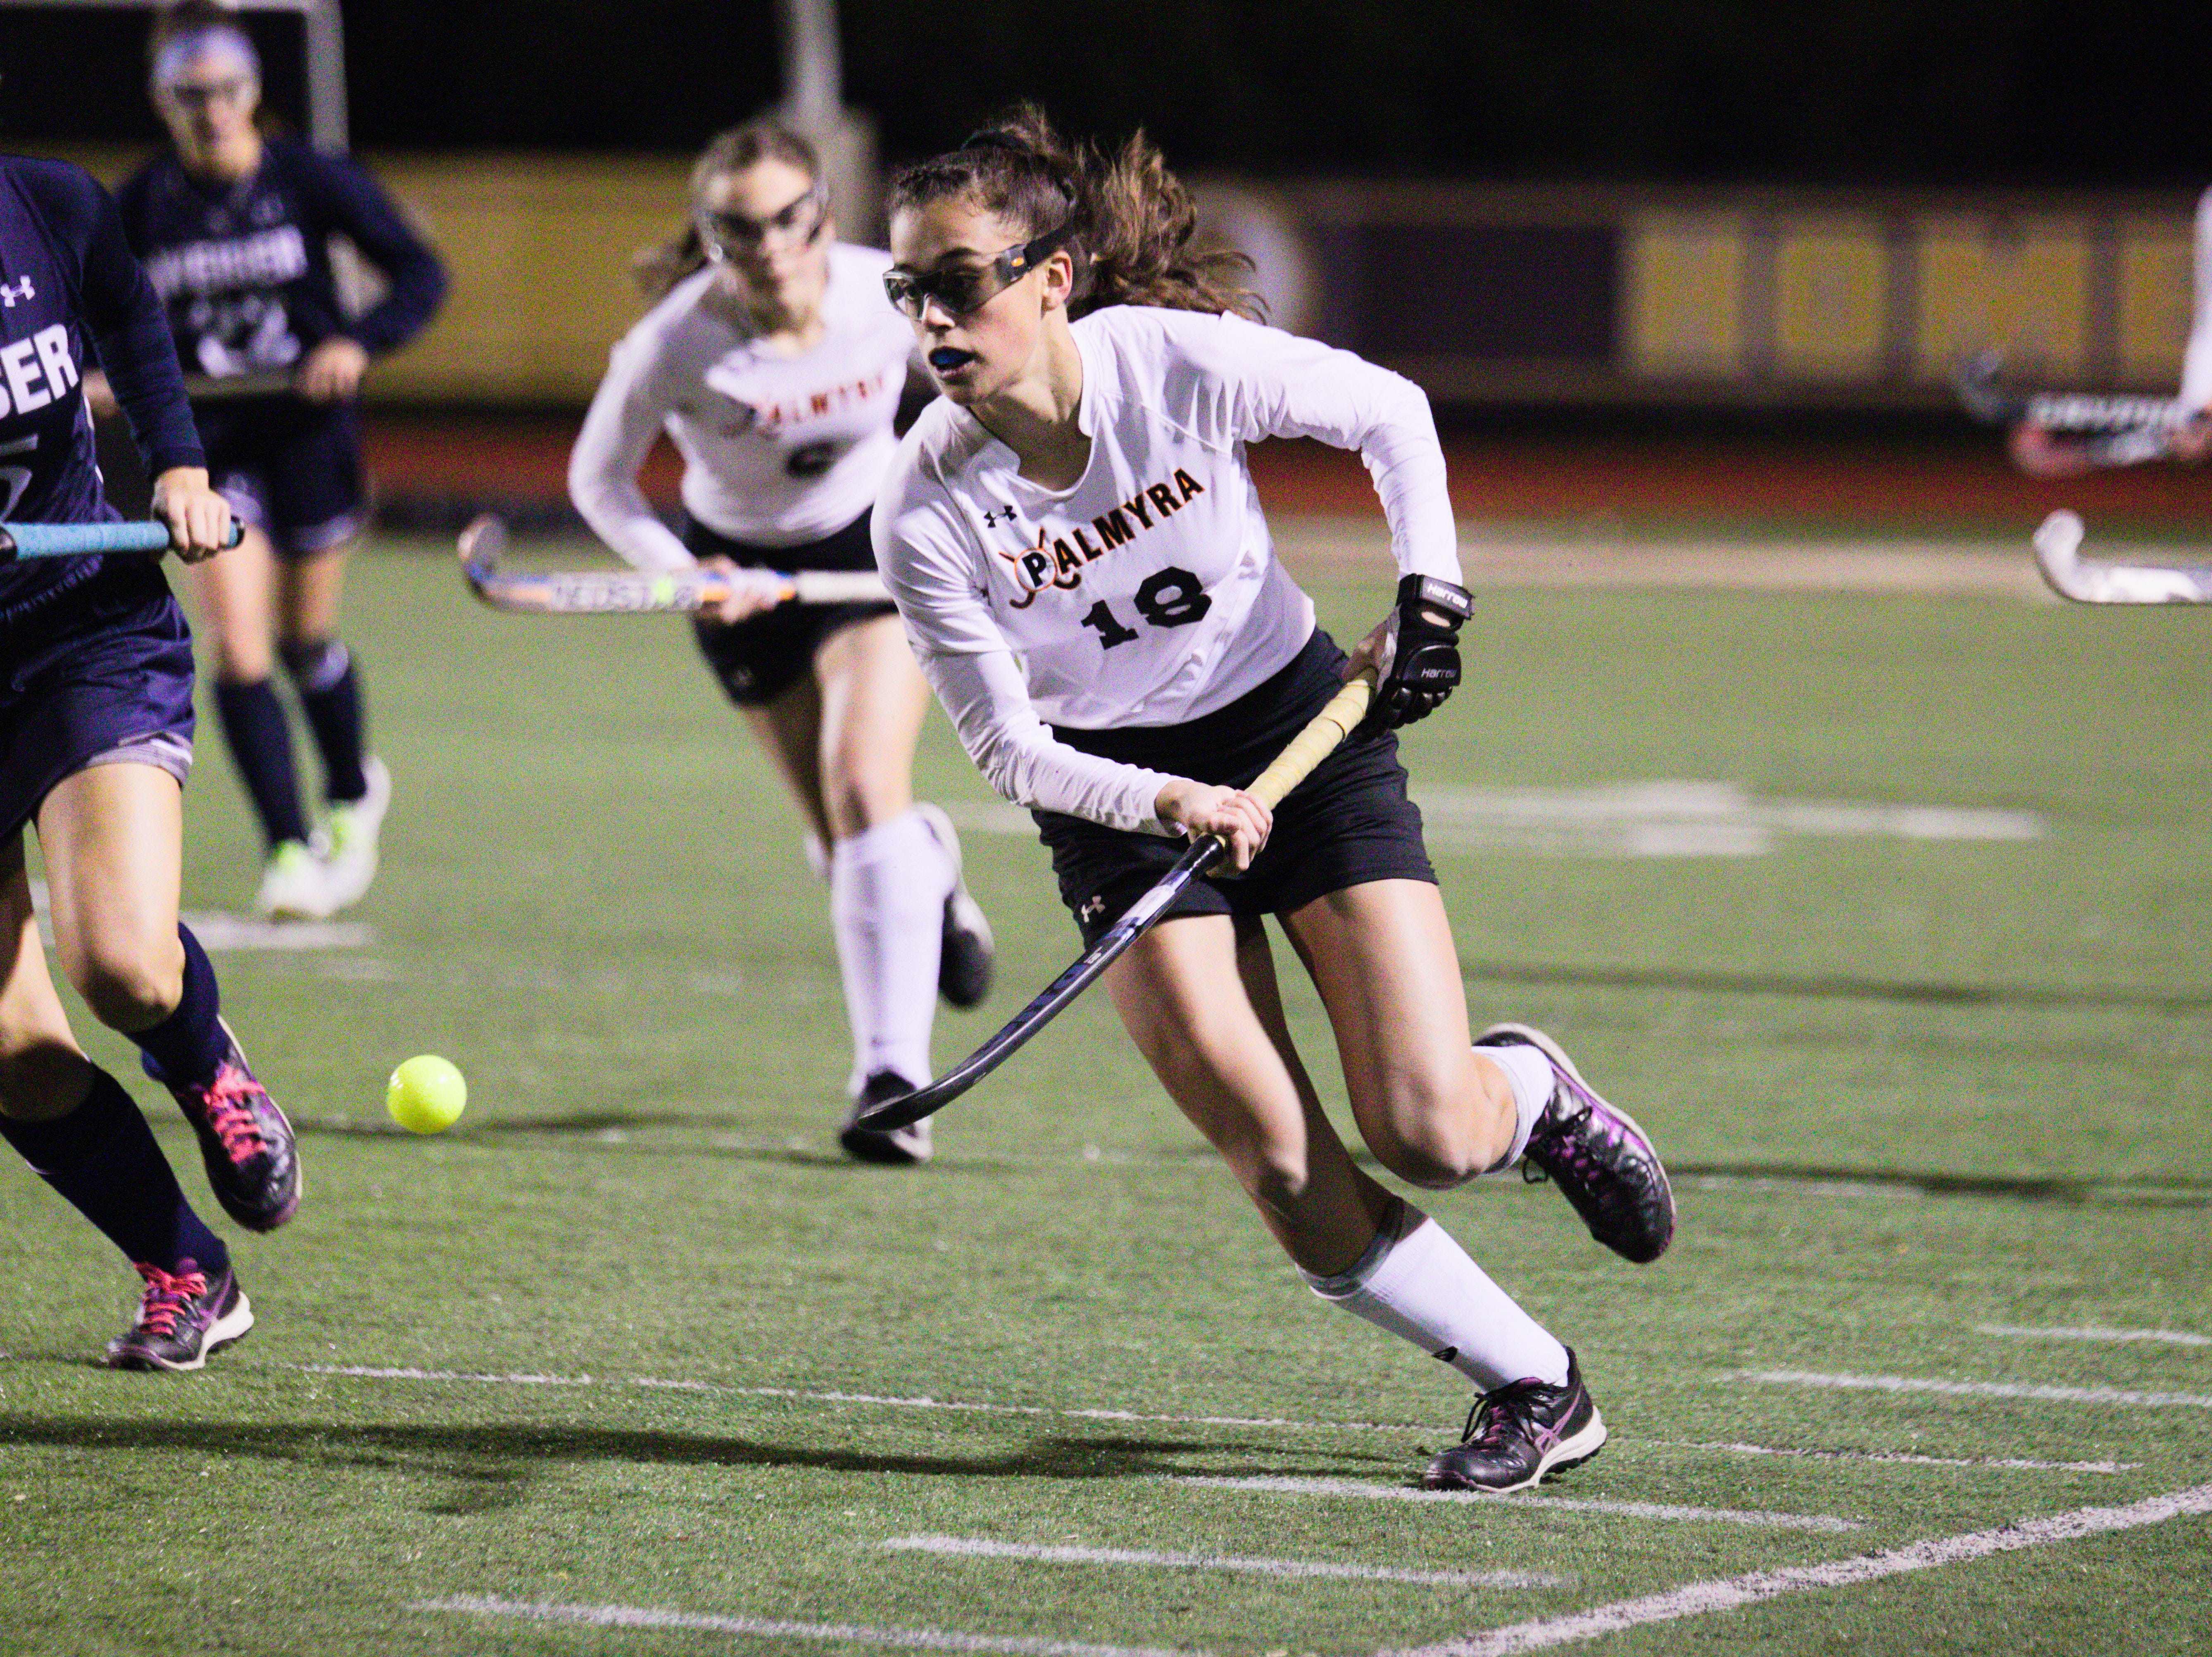 Minus 'A' game, Palmyra pulls out state opener on Julian's goal